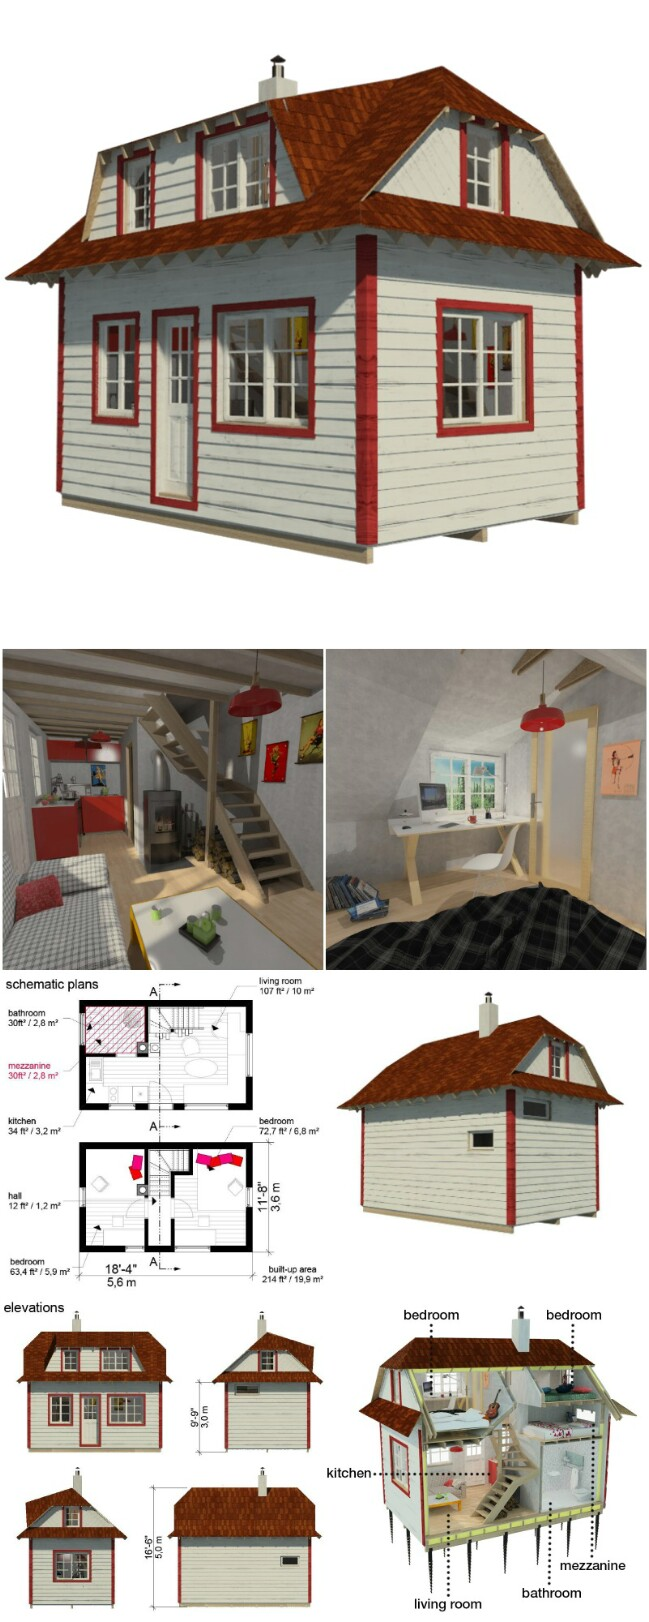 25 plans to build your own fully customized tiny house on a budget tiny houses. Black Bedroom Furniture Sets. Home Design Ideas